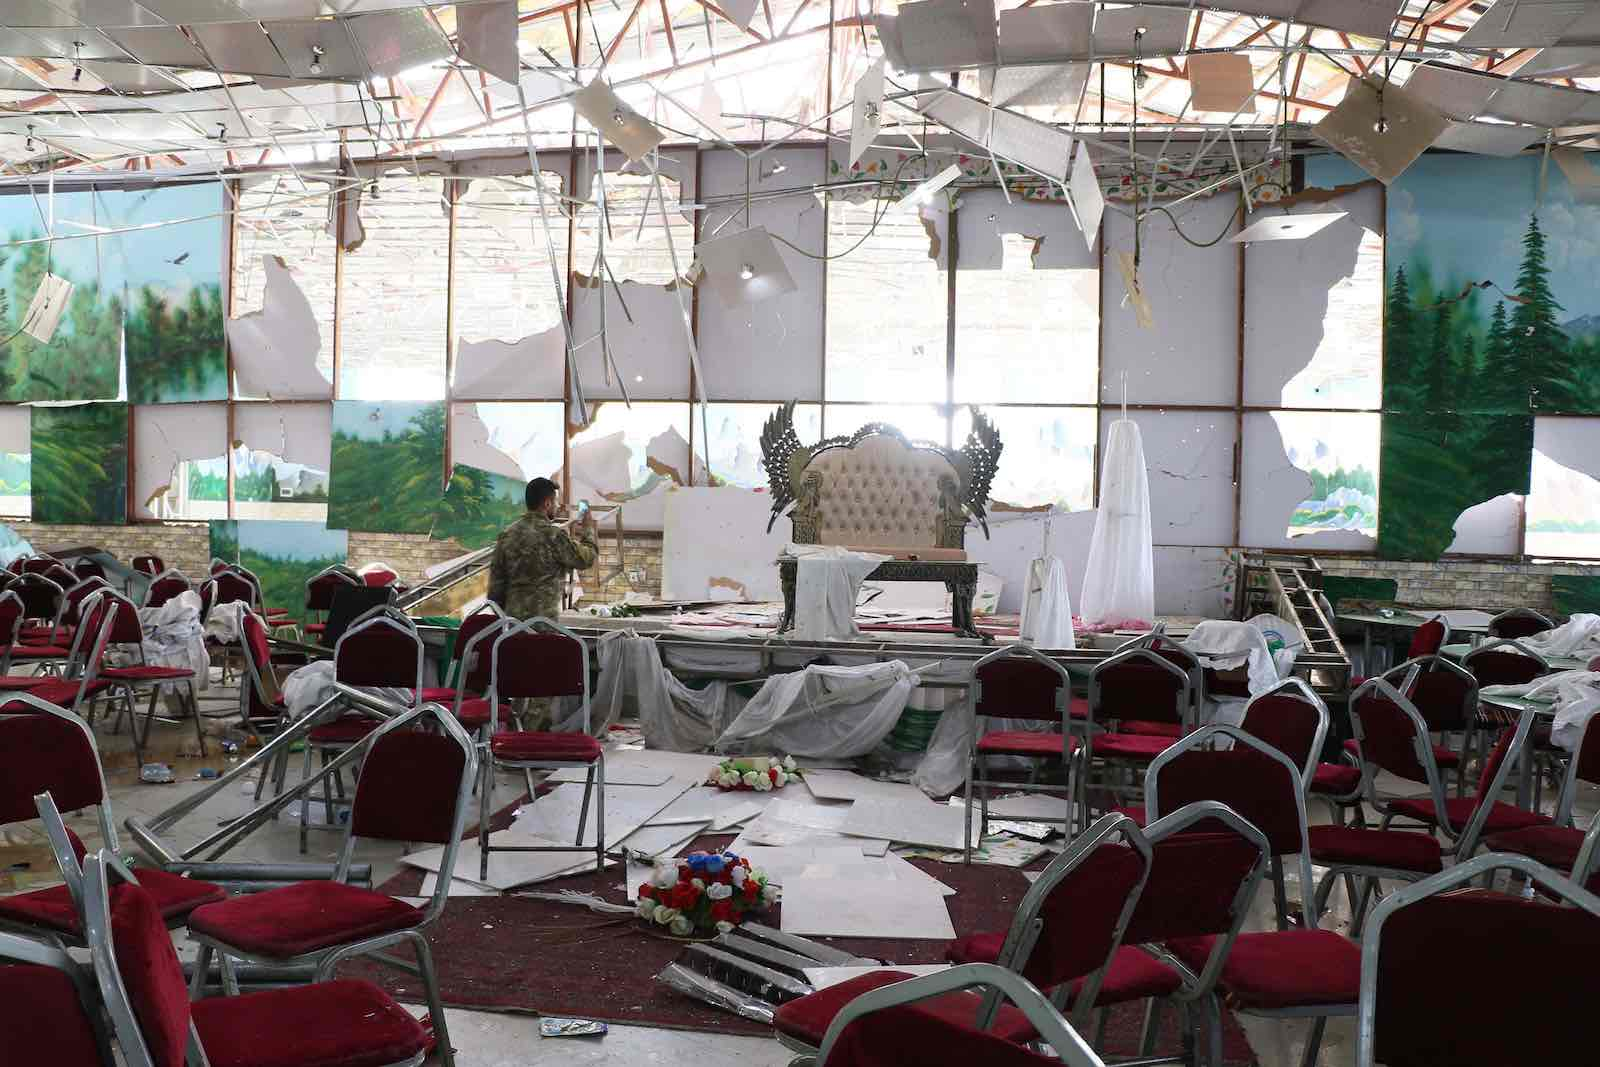 A suicide bomb blast last month at a wedding reception in Kabul killed over 60 people and injured nearly 200 (Photo: Haroon Sabawoon via Getty)